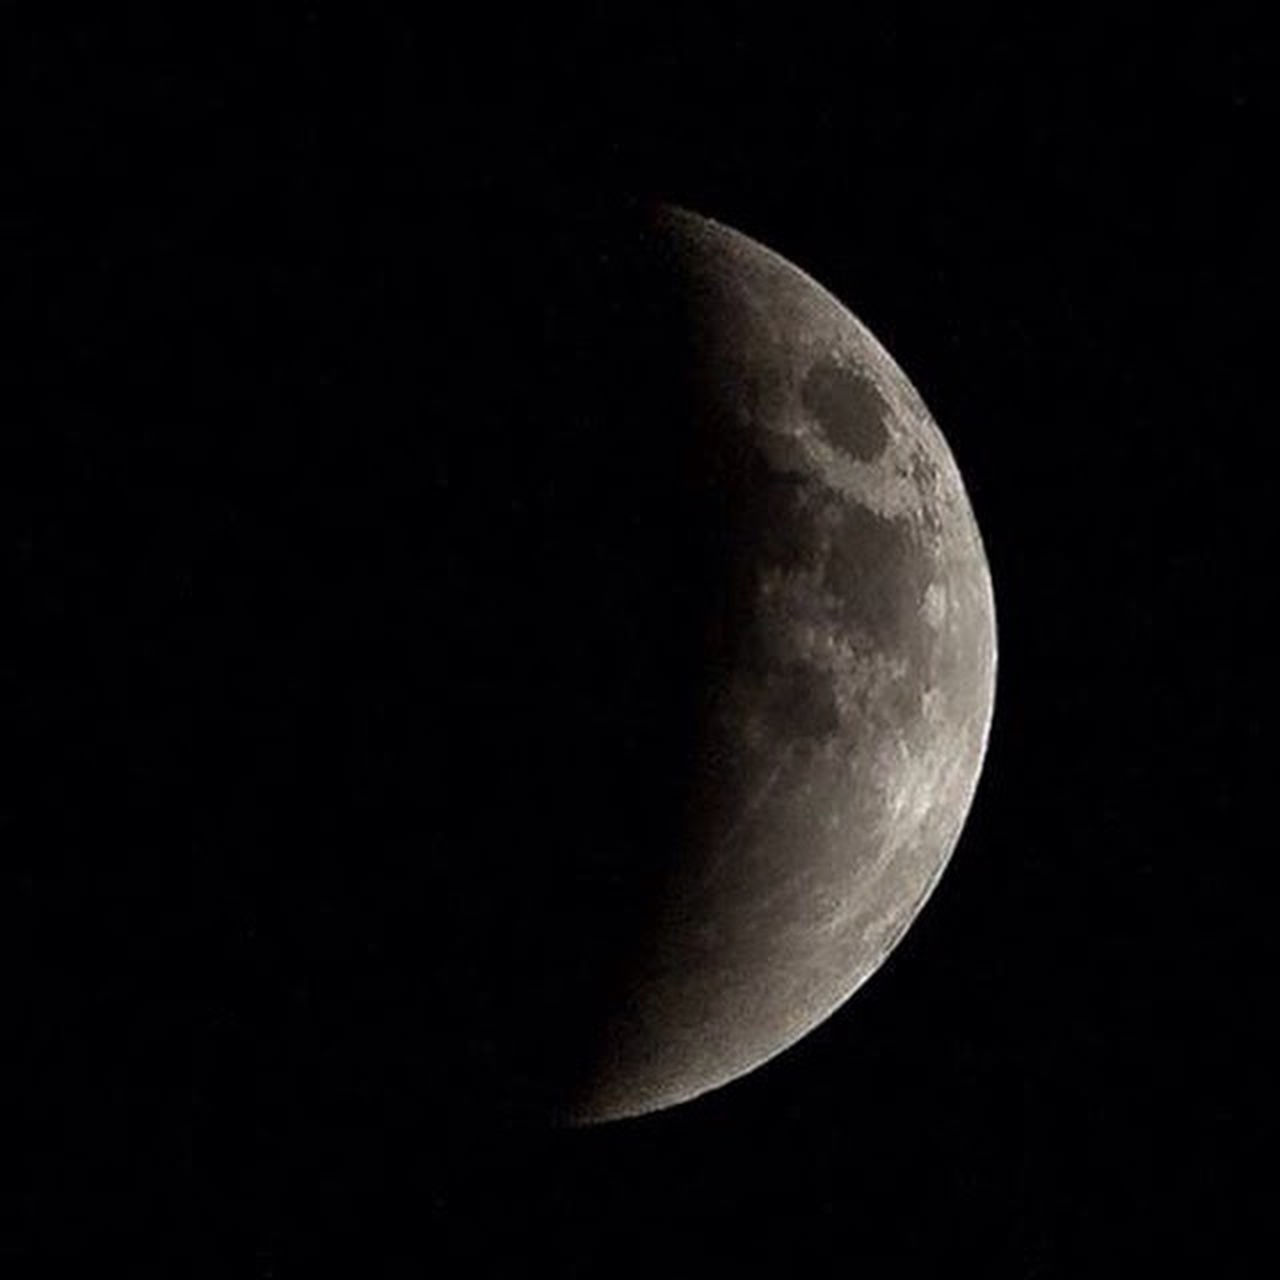 moon, astronomy, night, moon surface, majestic, planetary moon, space, half moon, beauty in nature, space exploration, scenics, dark, nature, tranquil scene, outdoors, discovery, crescent, moonlight, low angle view, semi-circle, no people, sky, clear sky, close-up, satellite view